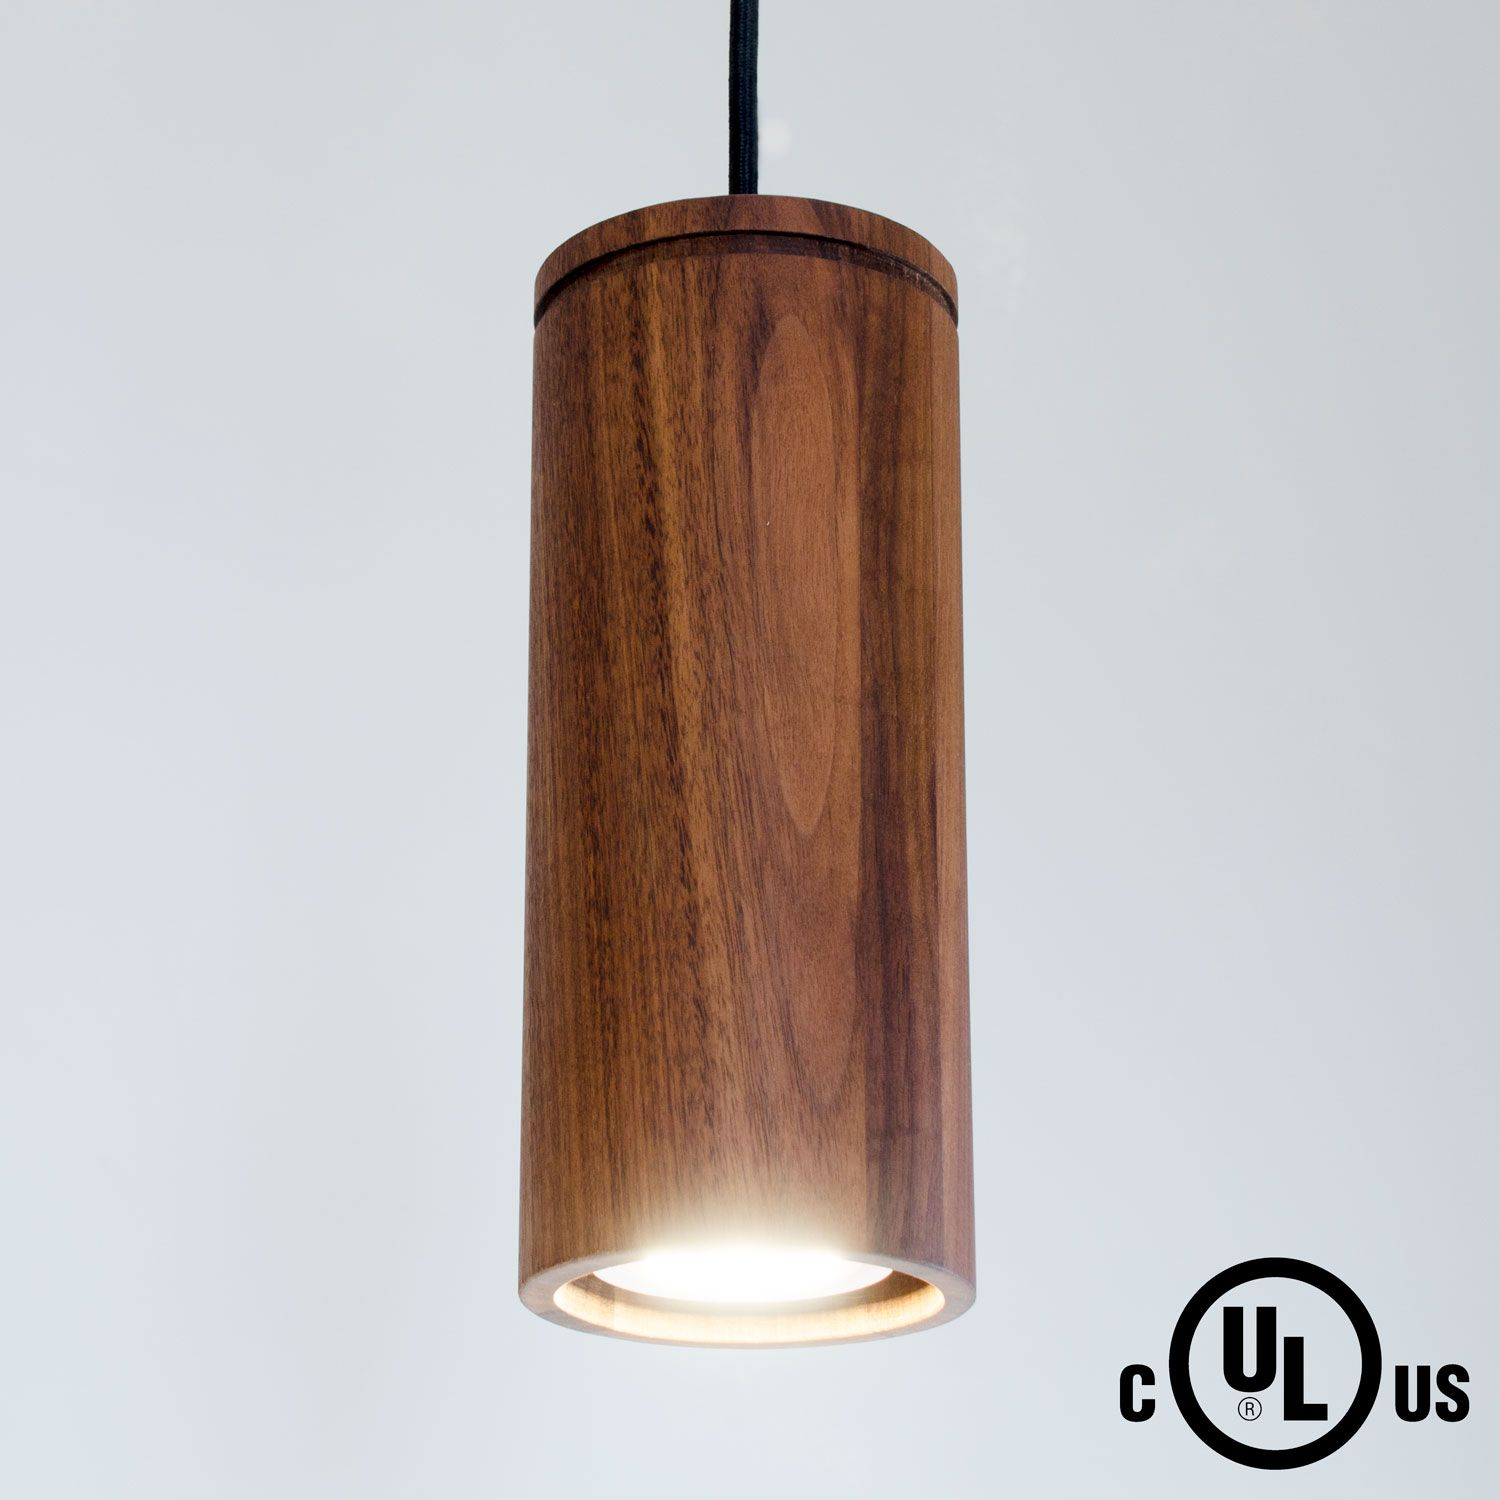 Modern Pendant Light Small Wood Cylinder Pendant Light Wood Pendant Light Pendant Lamp Ikea Pendant Light